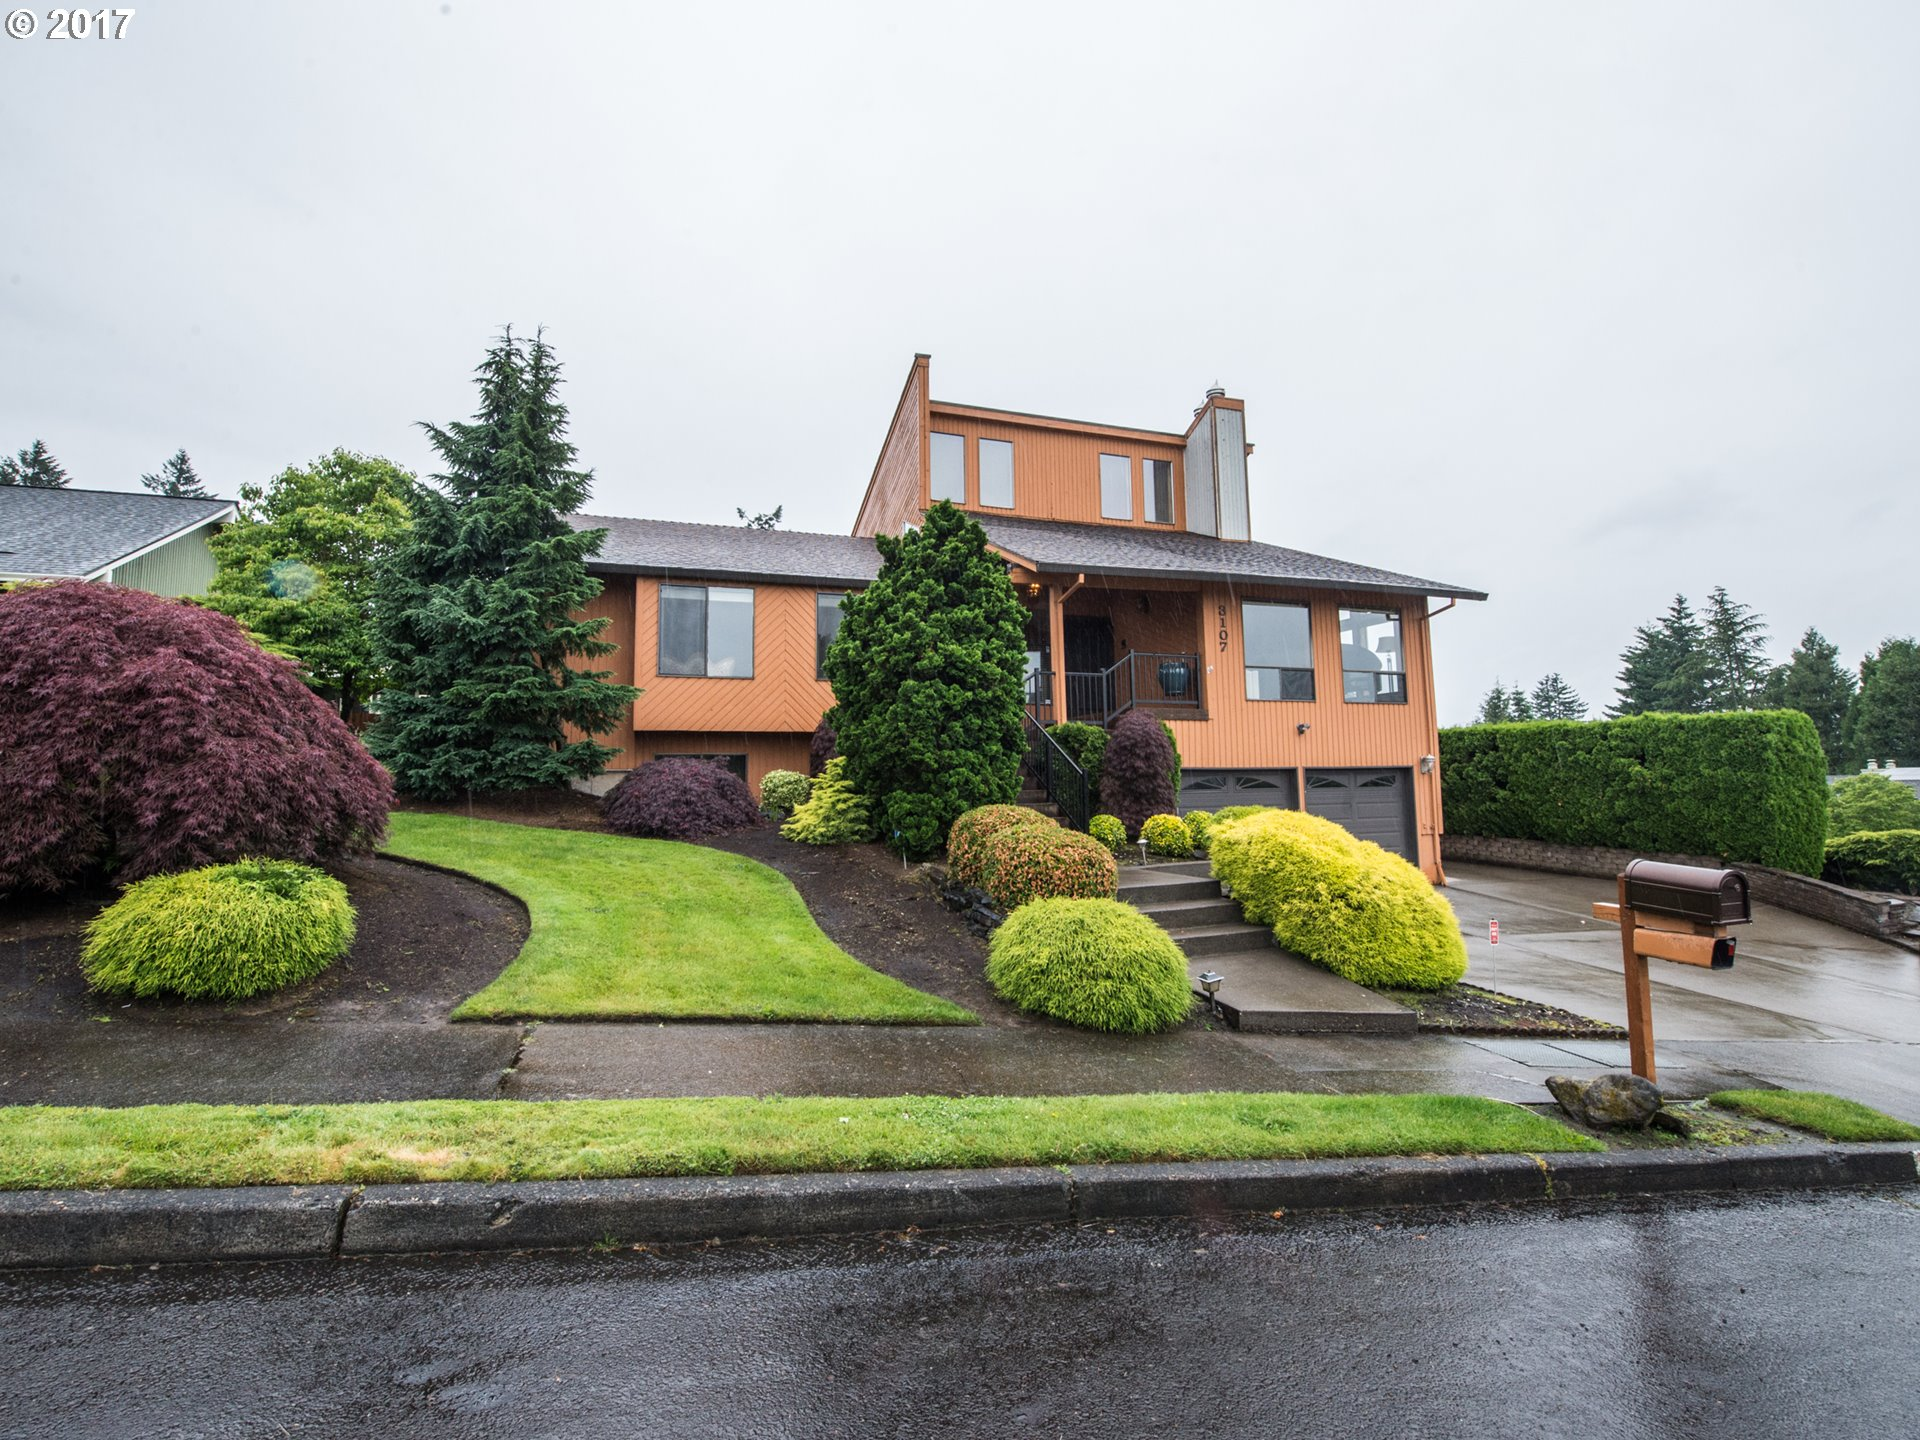 3361 sq. ft 5 bedrooms 3 bathrooms  House , Portland, OR